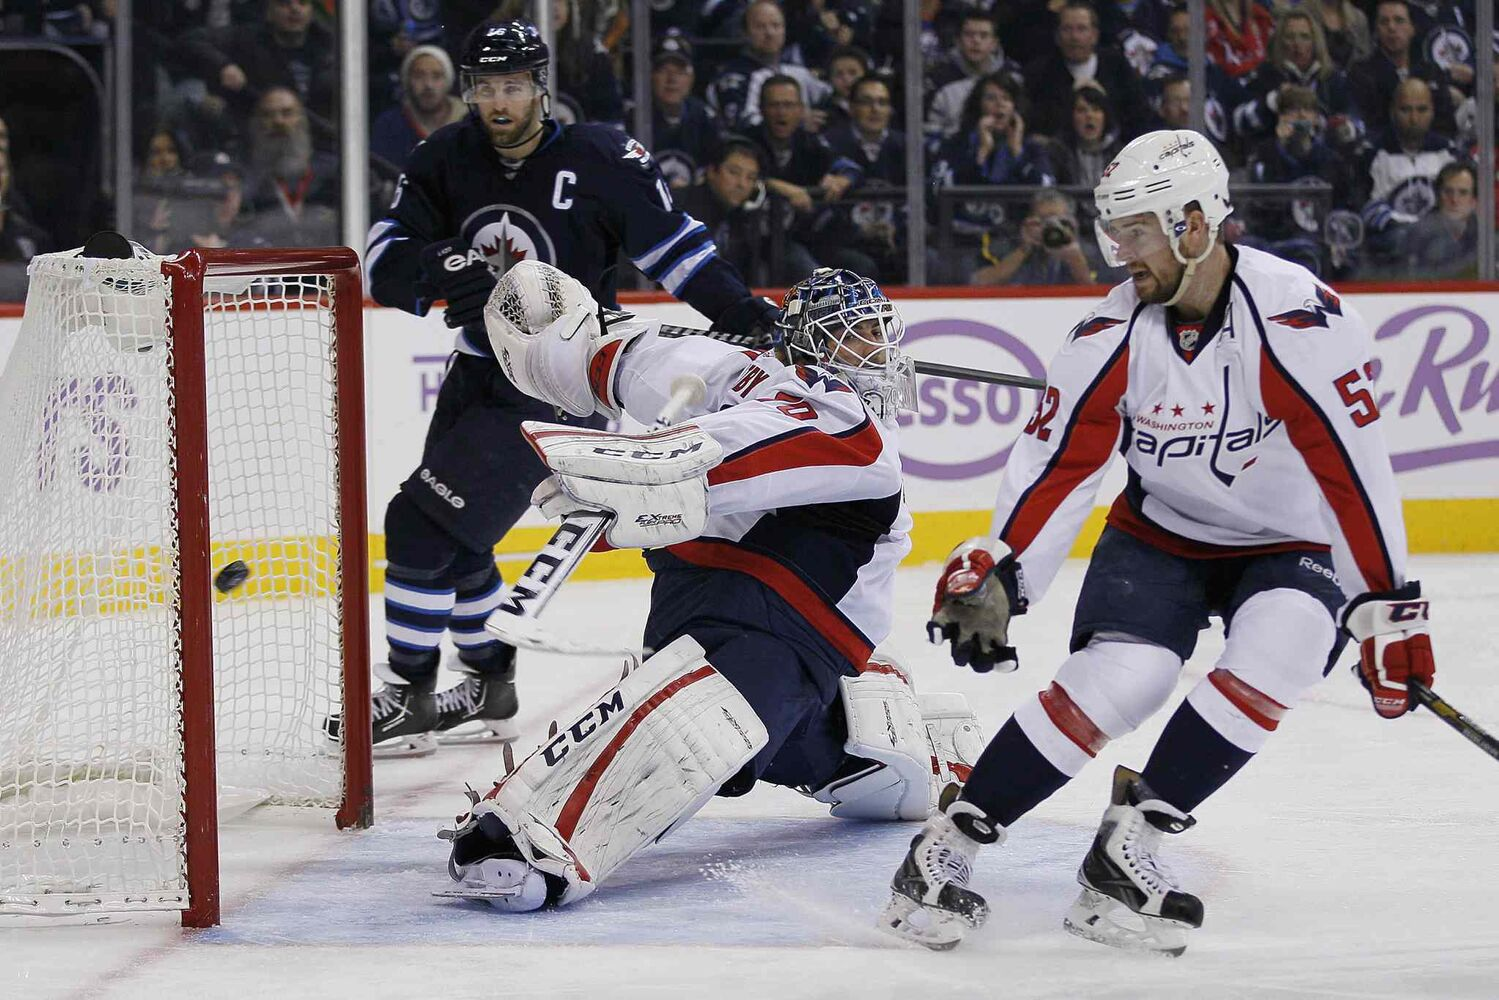 Winnipeg Jets forward Andrew Ladd and Washington Capitals defenceman Mike Green watch as a shot from Jets forward Bryan Little's blasts past Capitals goaltender Braden Holtby during the second period.